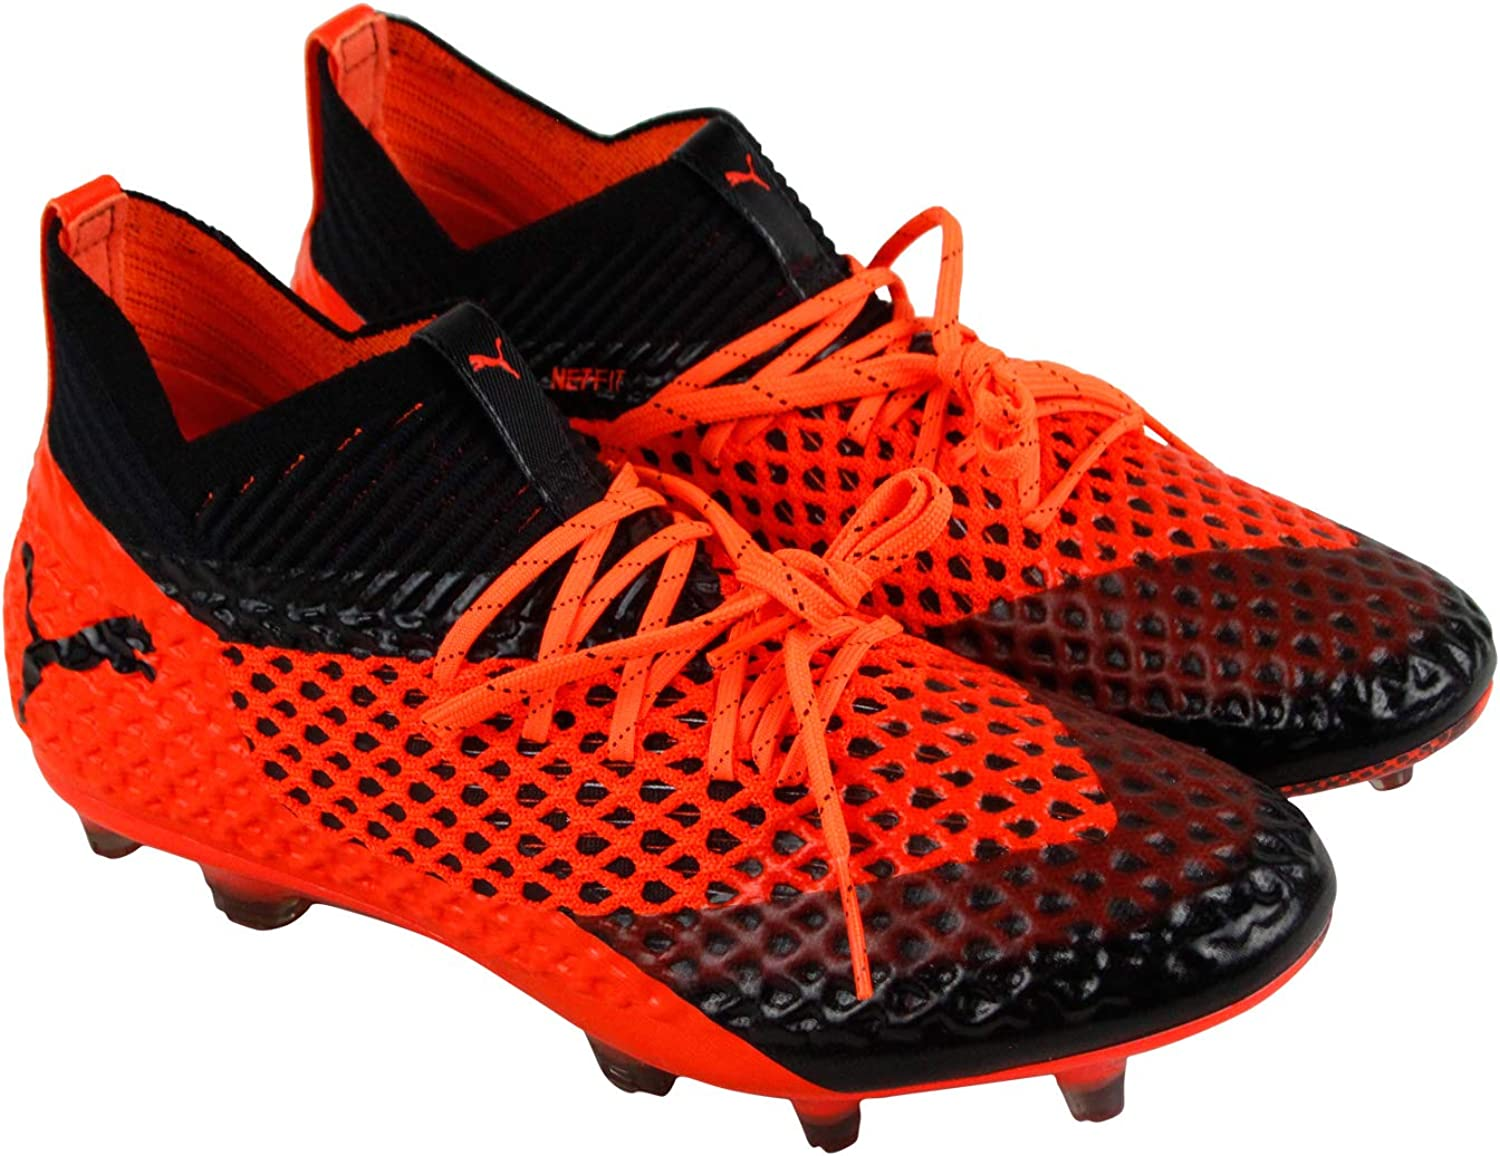 Future Future 2.1 Netfit Fg Ag Mens Orange Synthetic Soccer Cleats schuhe 11.5  Bis zu 60% Rabatt